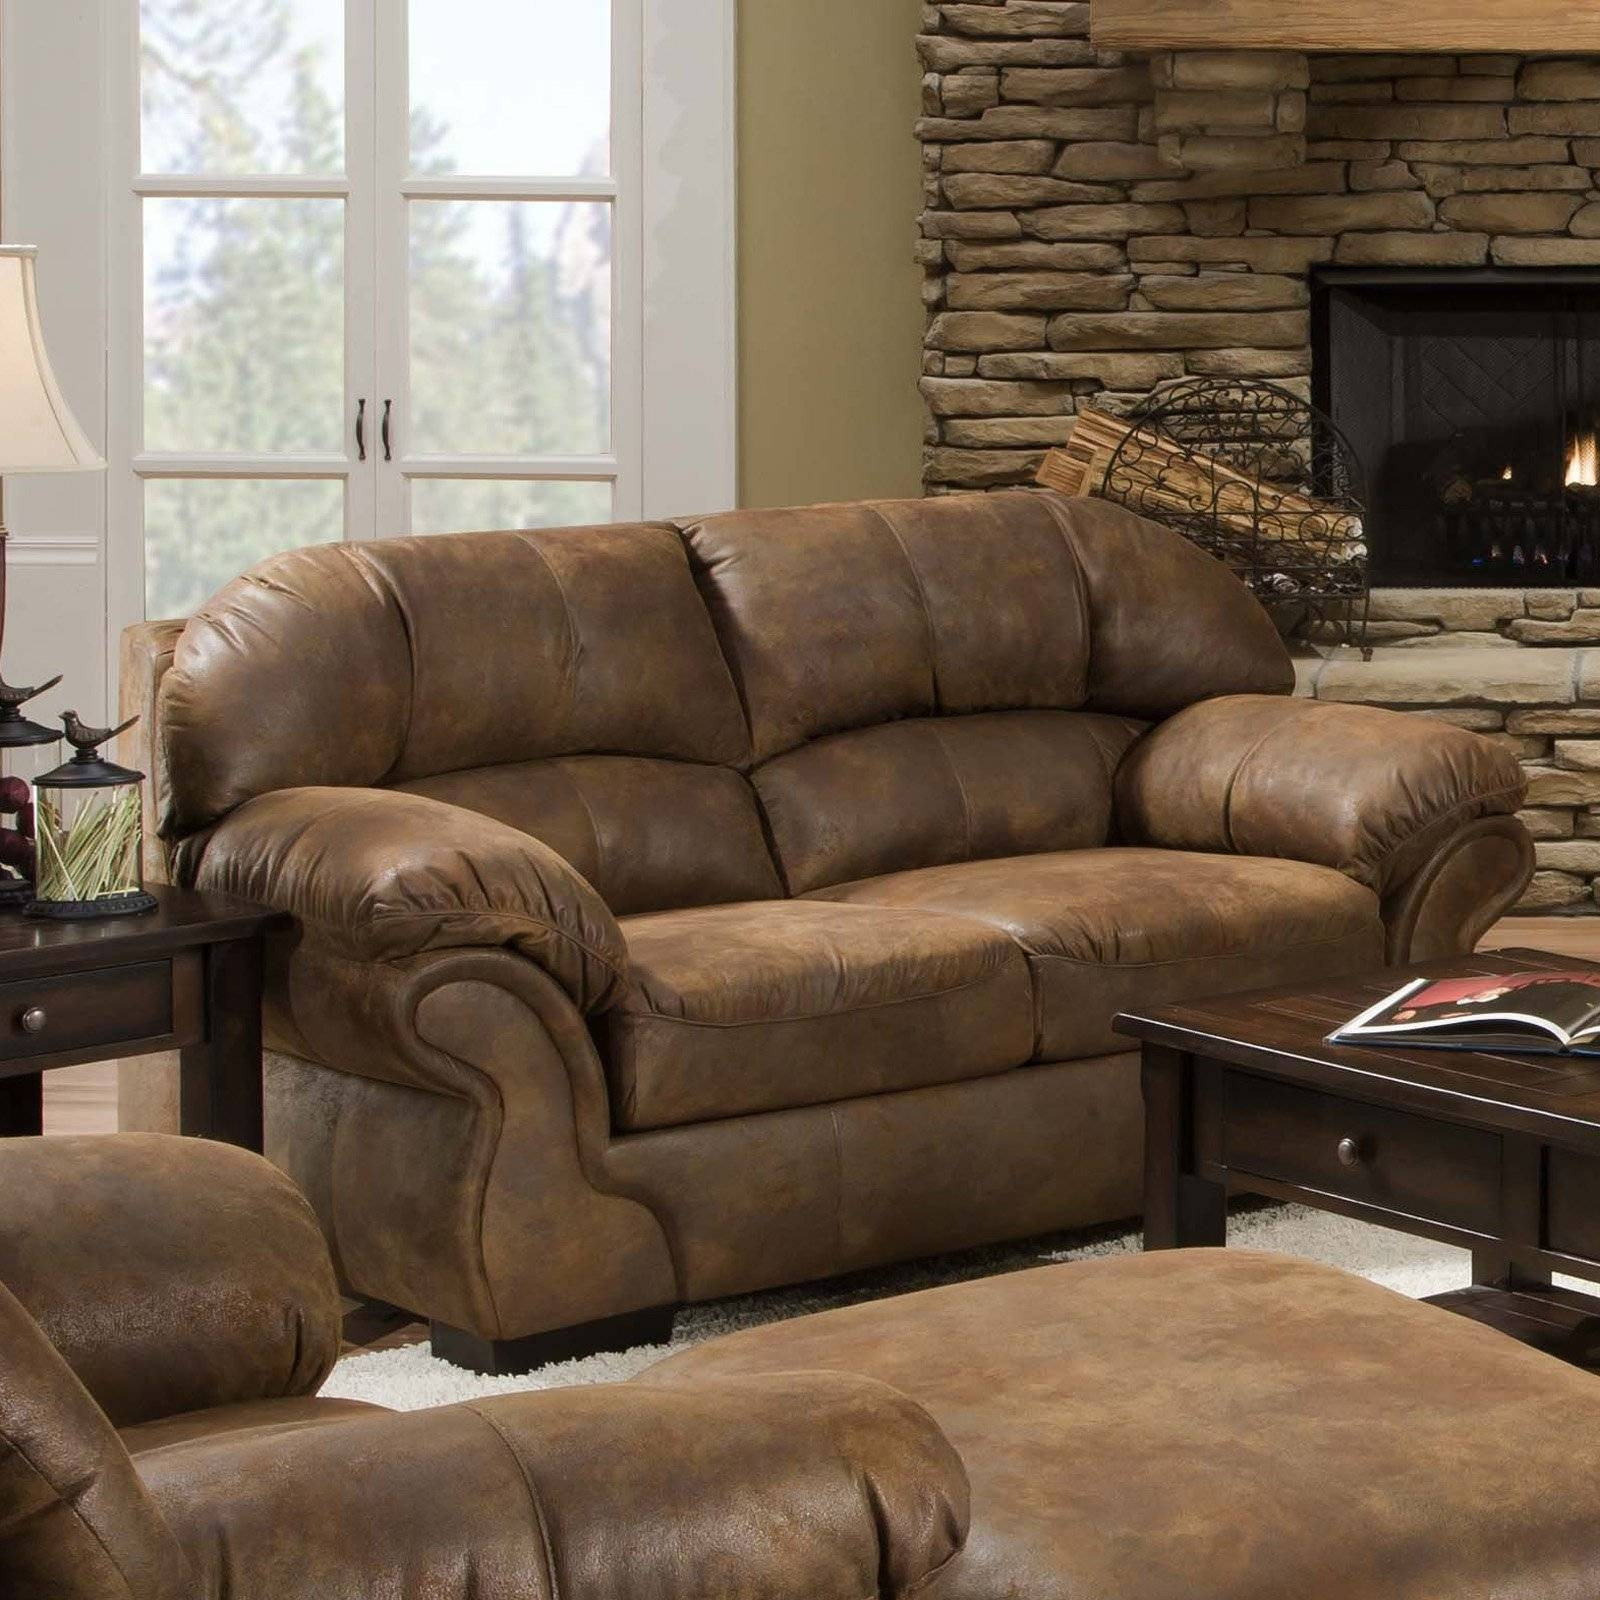 Simmons Pinto Tobacco Leather Loveseat | Hayneedle intended for Simmons Leather Sofas (Image 9 of 15)